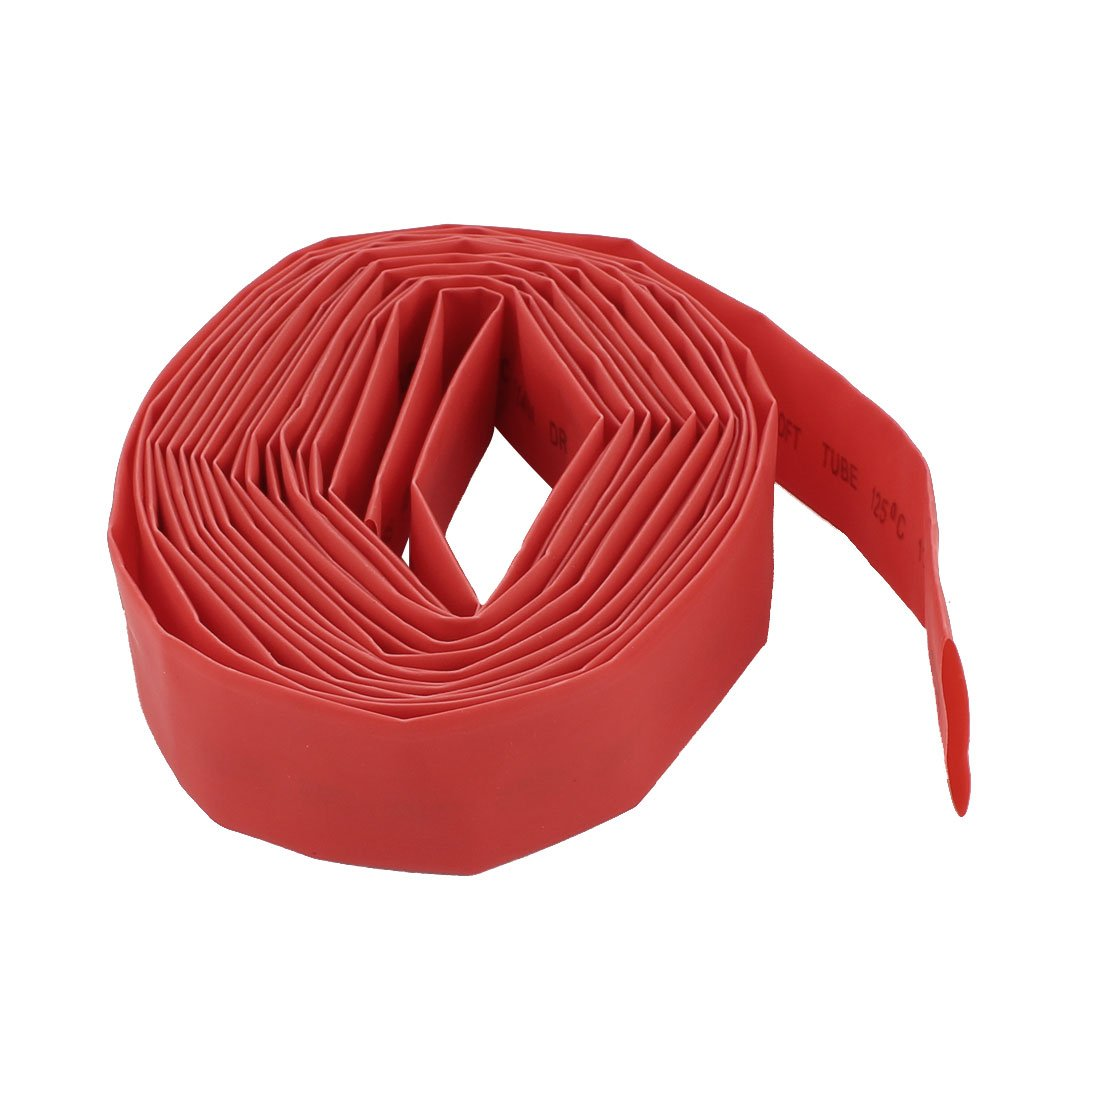 Sourcingmap 16mm Diameter Heat Shrinkable Tube Shrink Tubing Wire Wrap 5M 16Ft Red a14072300ux0667